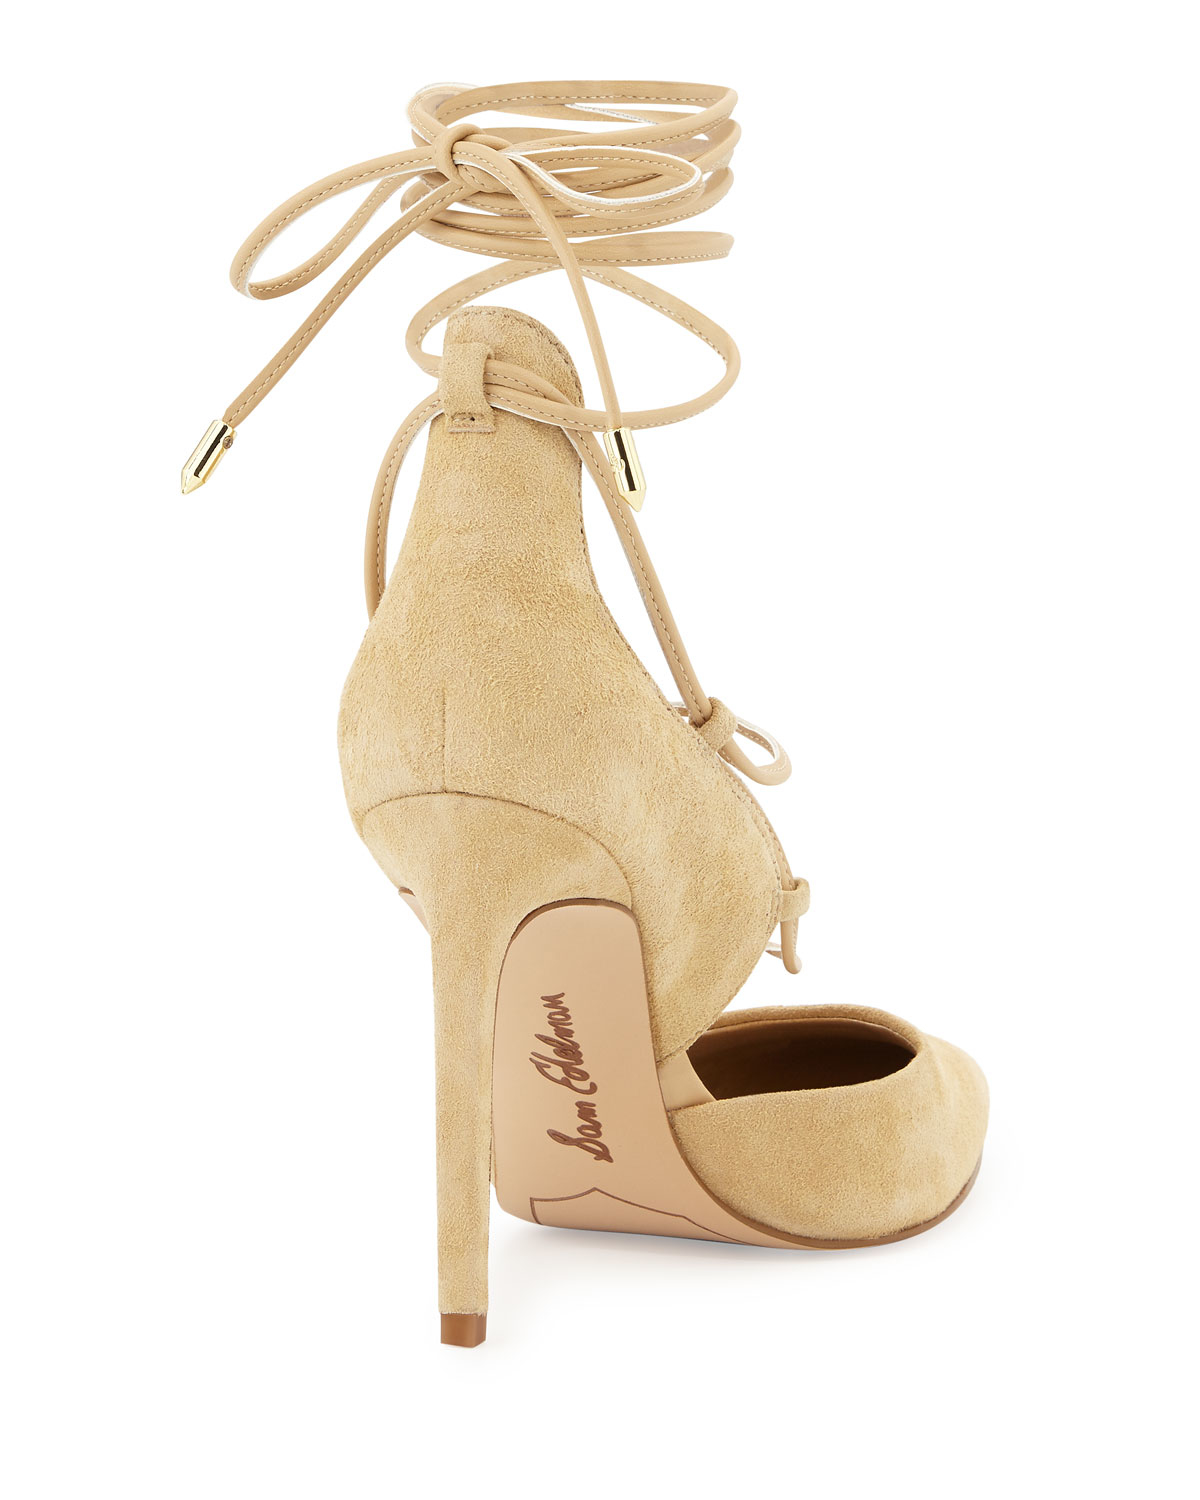 99a12240fb20 Lyst - Sam Edelman Dayna Suede Lace-up Pump in Natural